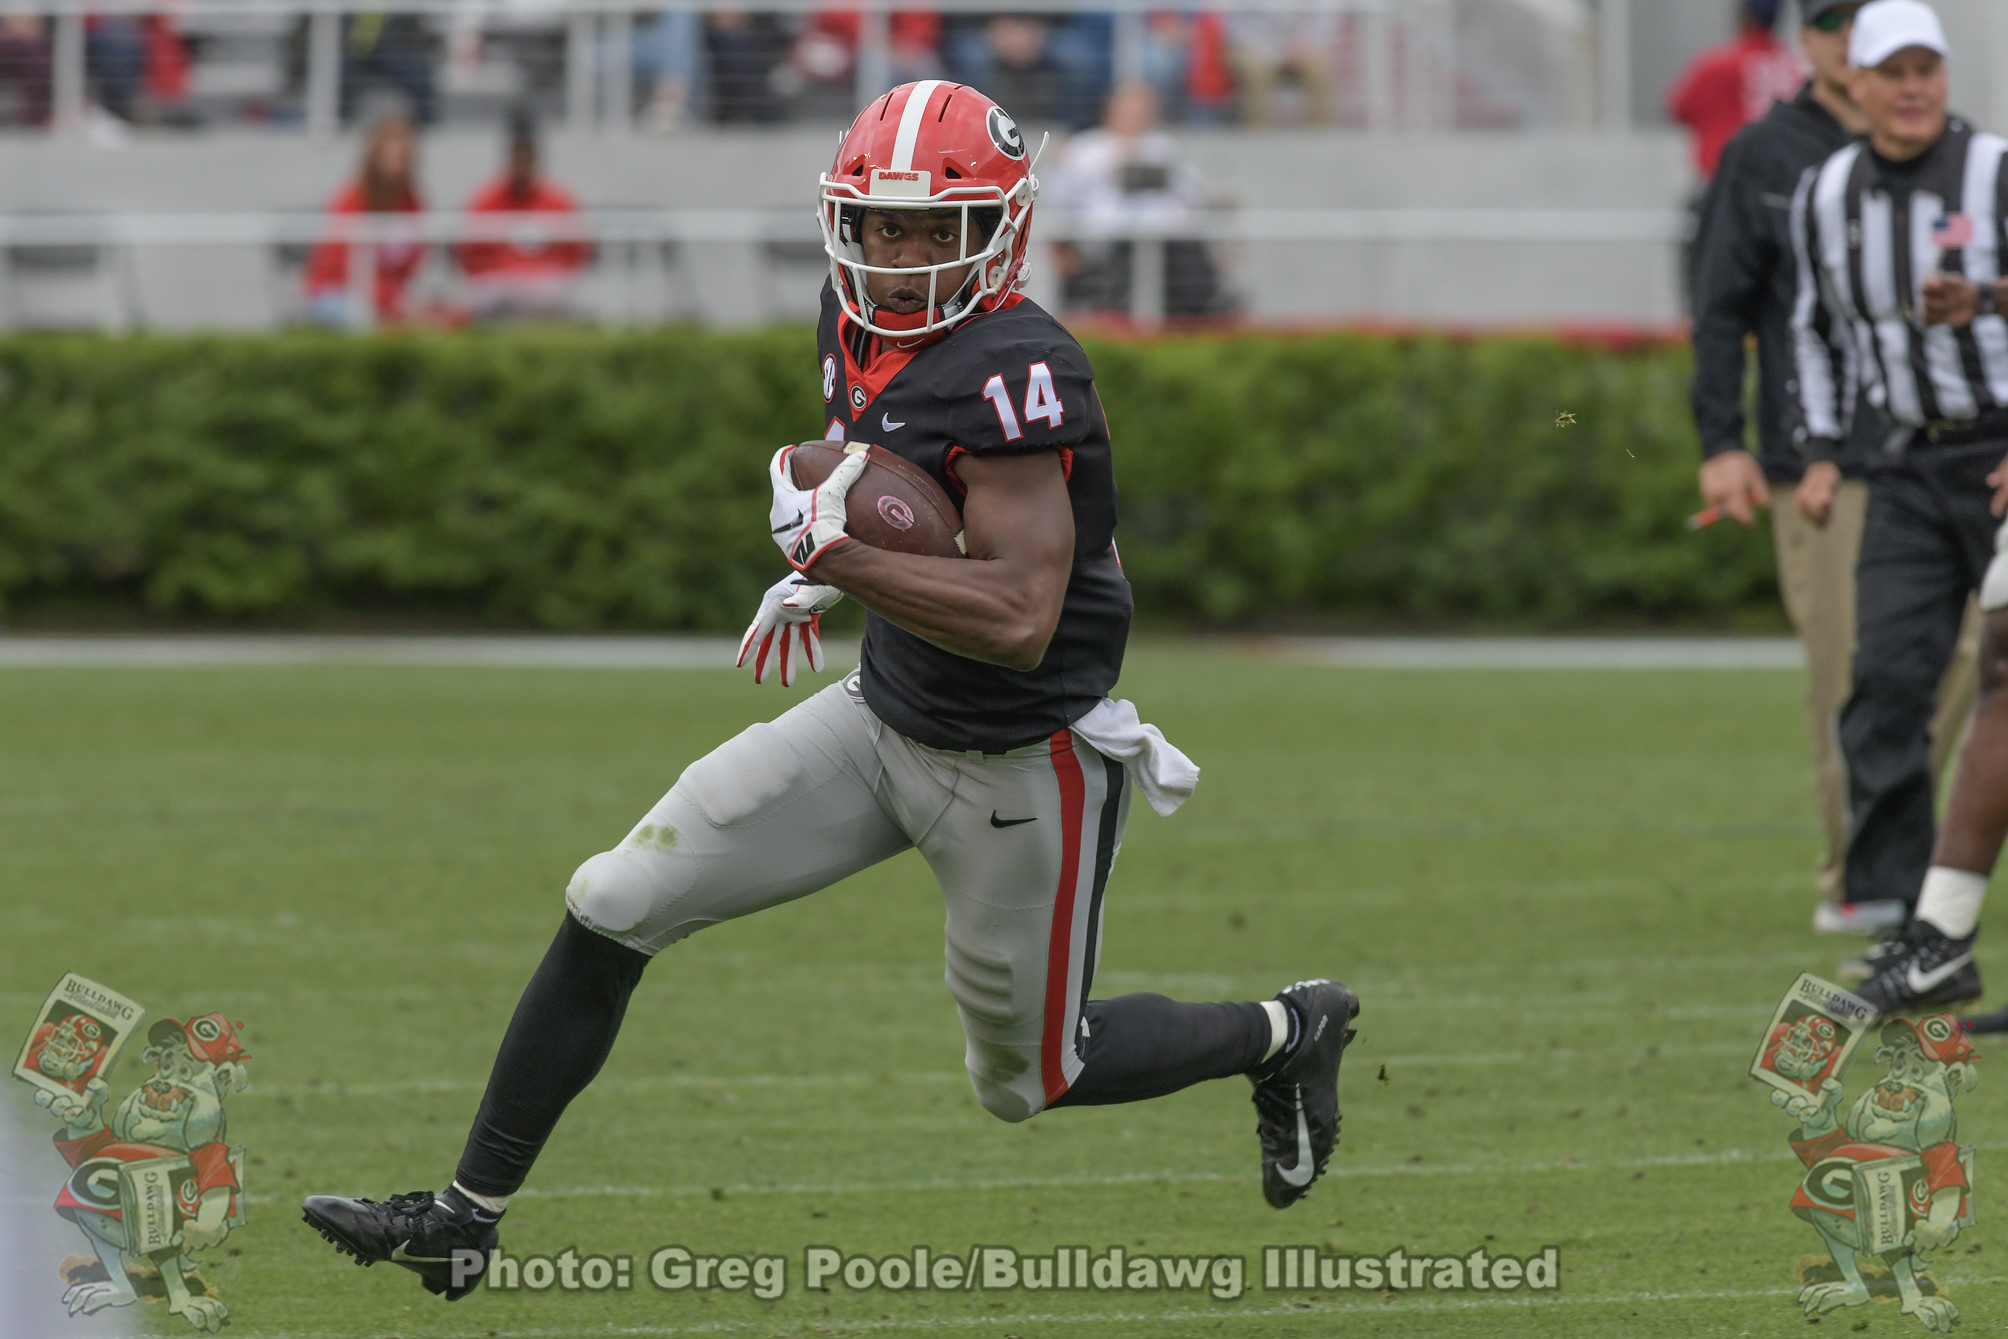 G-DAY SHOWING DOESN'T REFLECT THE POTENTIAL OF 2019 BULLDOGS